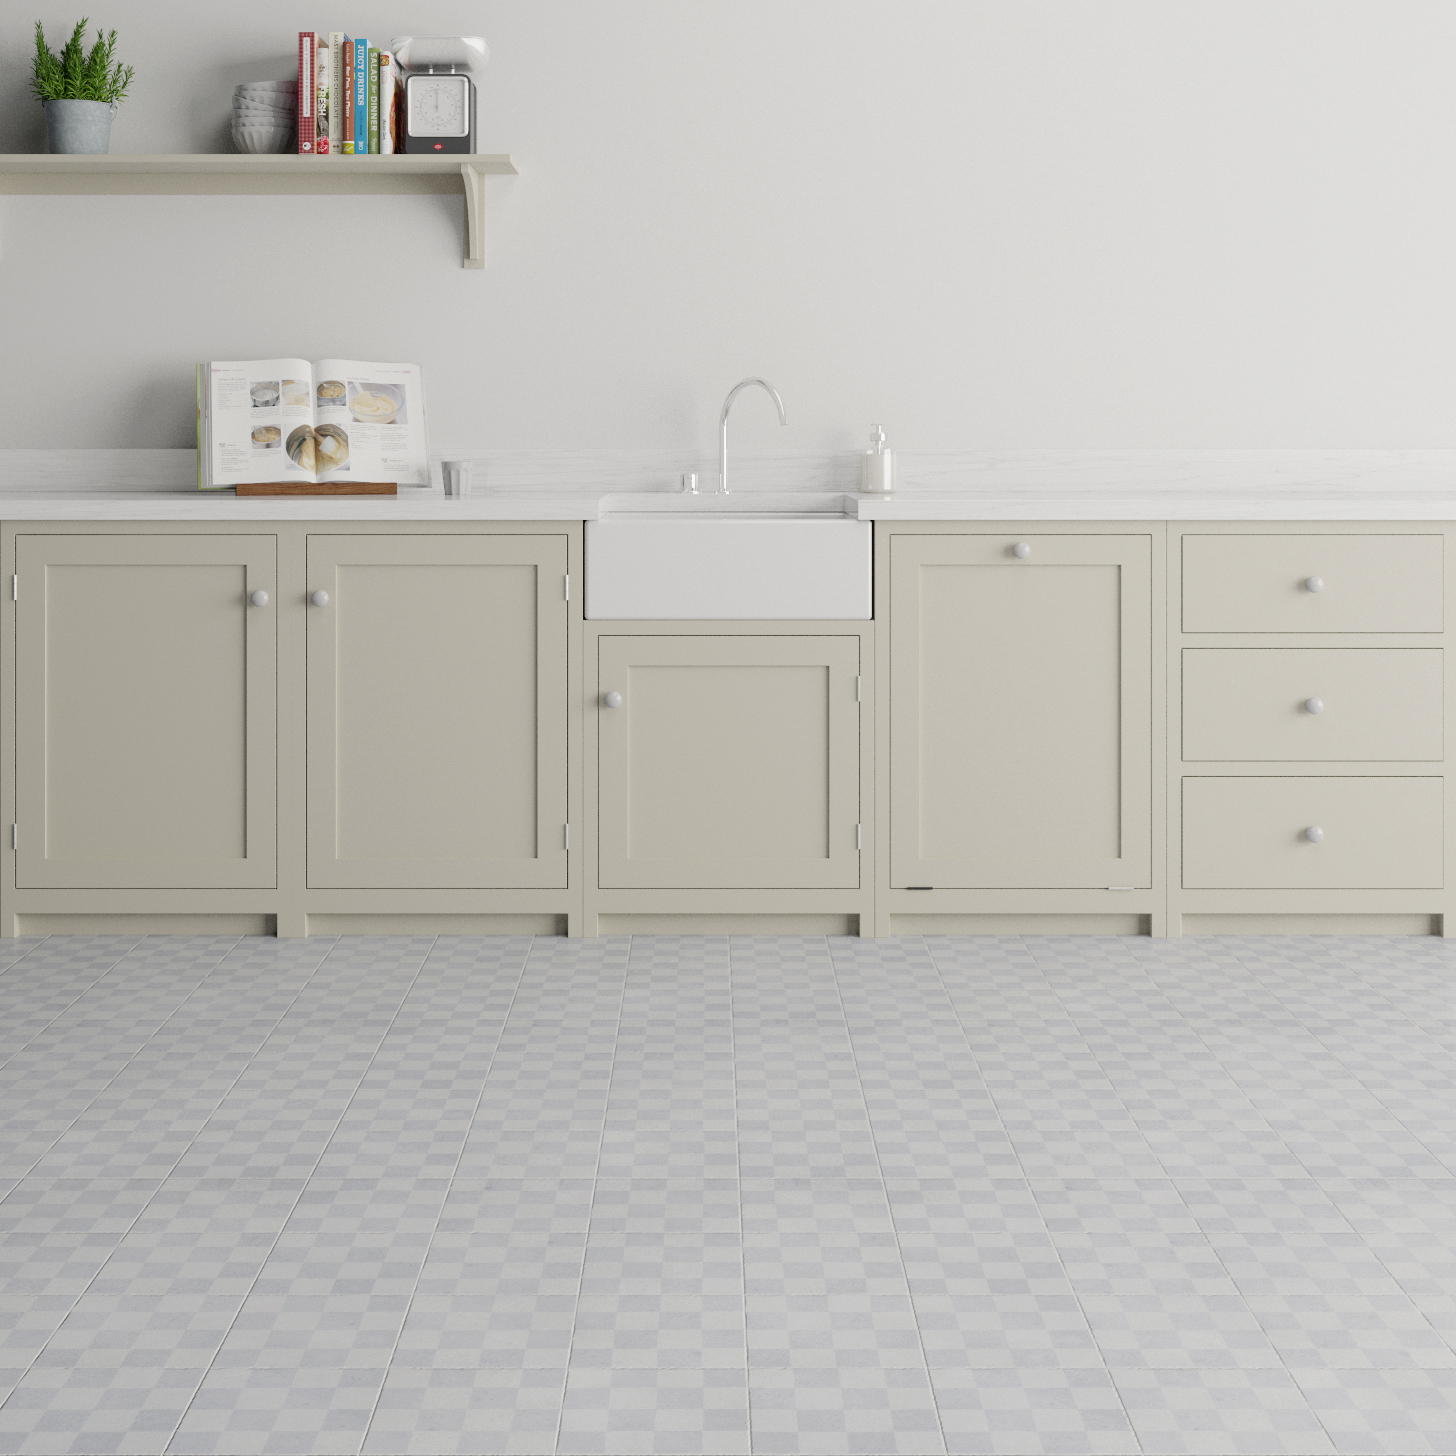 Chequered Kitchen